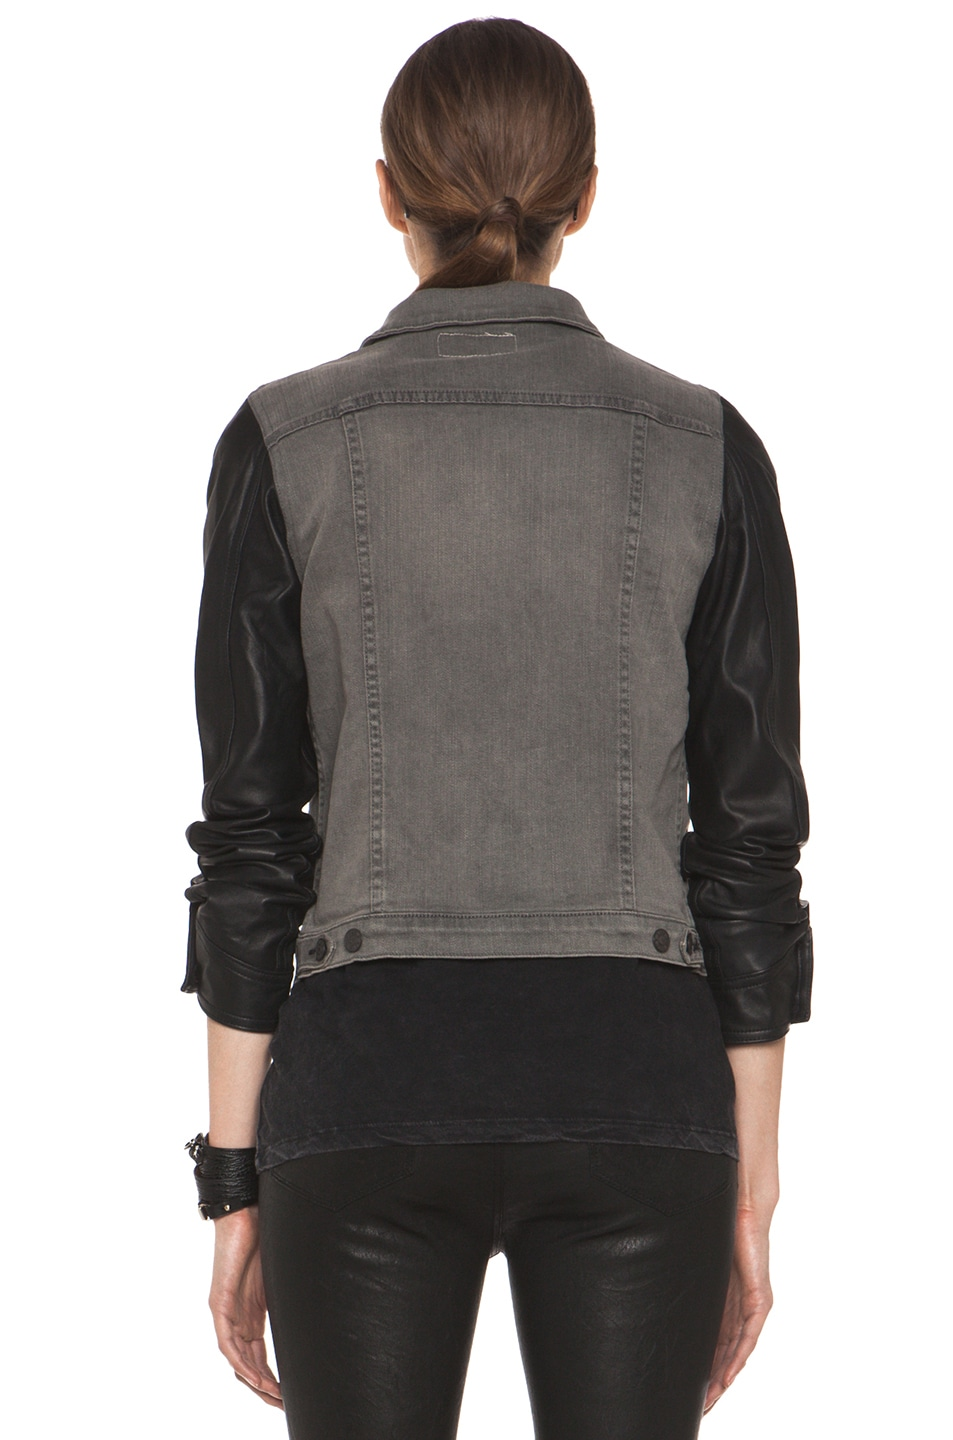 Image 4 of rag & bone JEAN Denim Jacket with Leather Sleeves in Iron